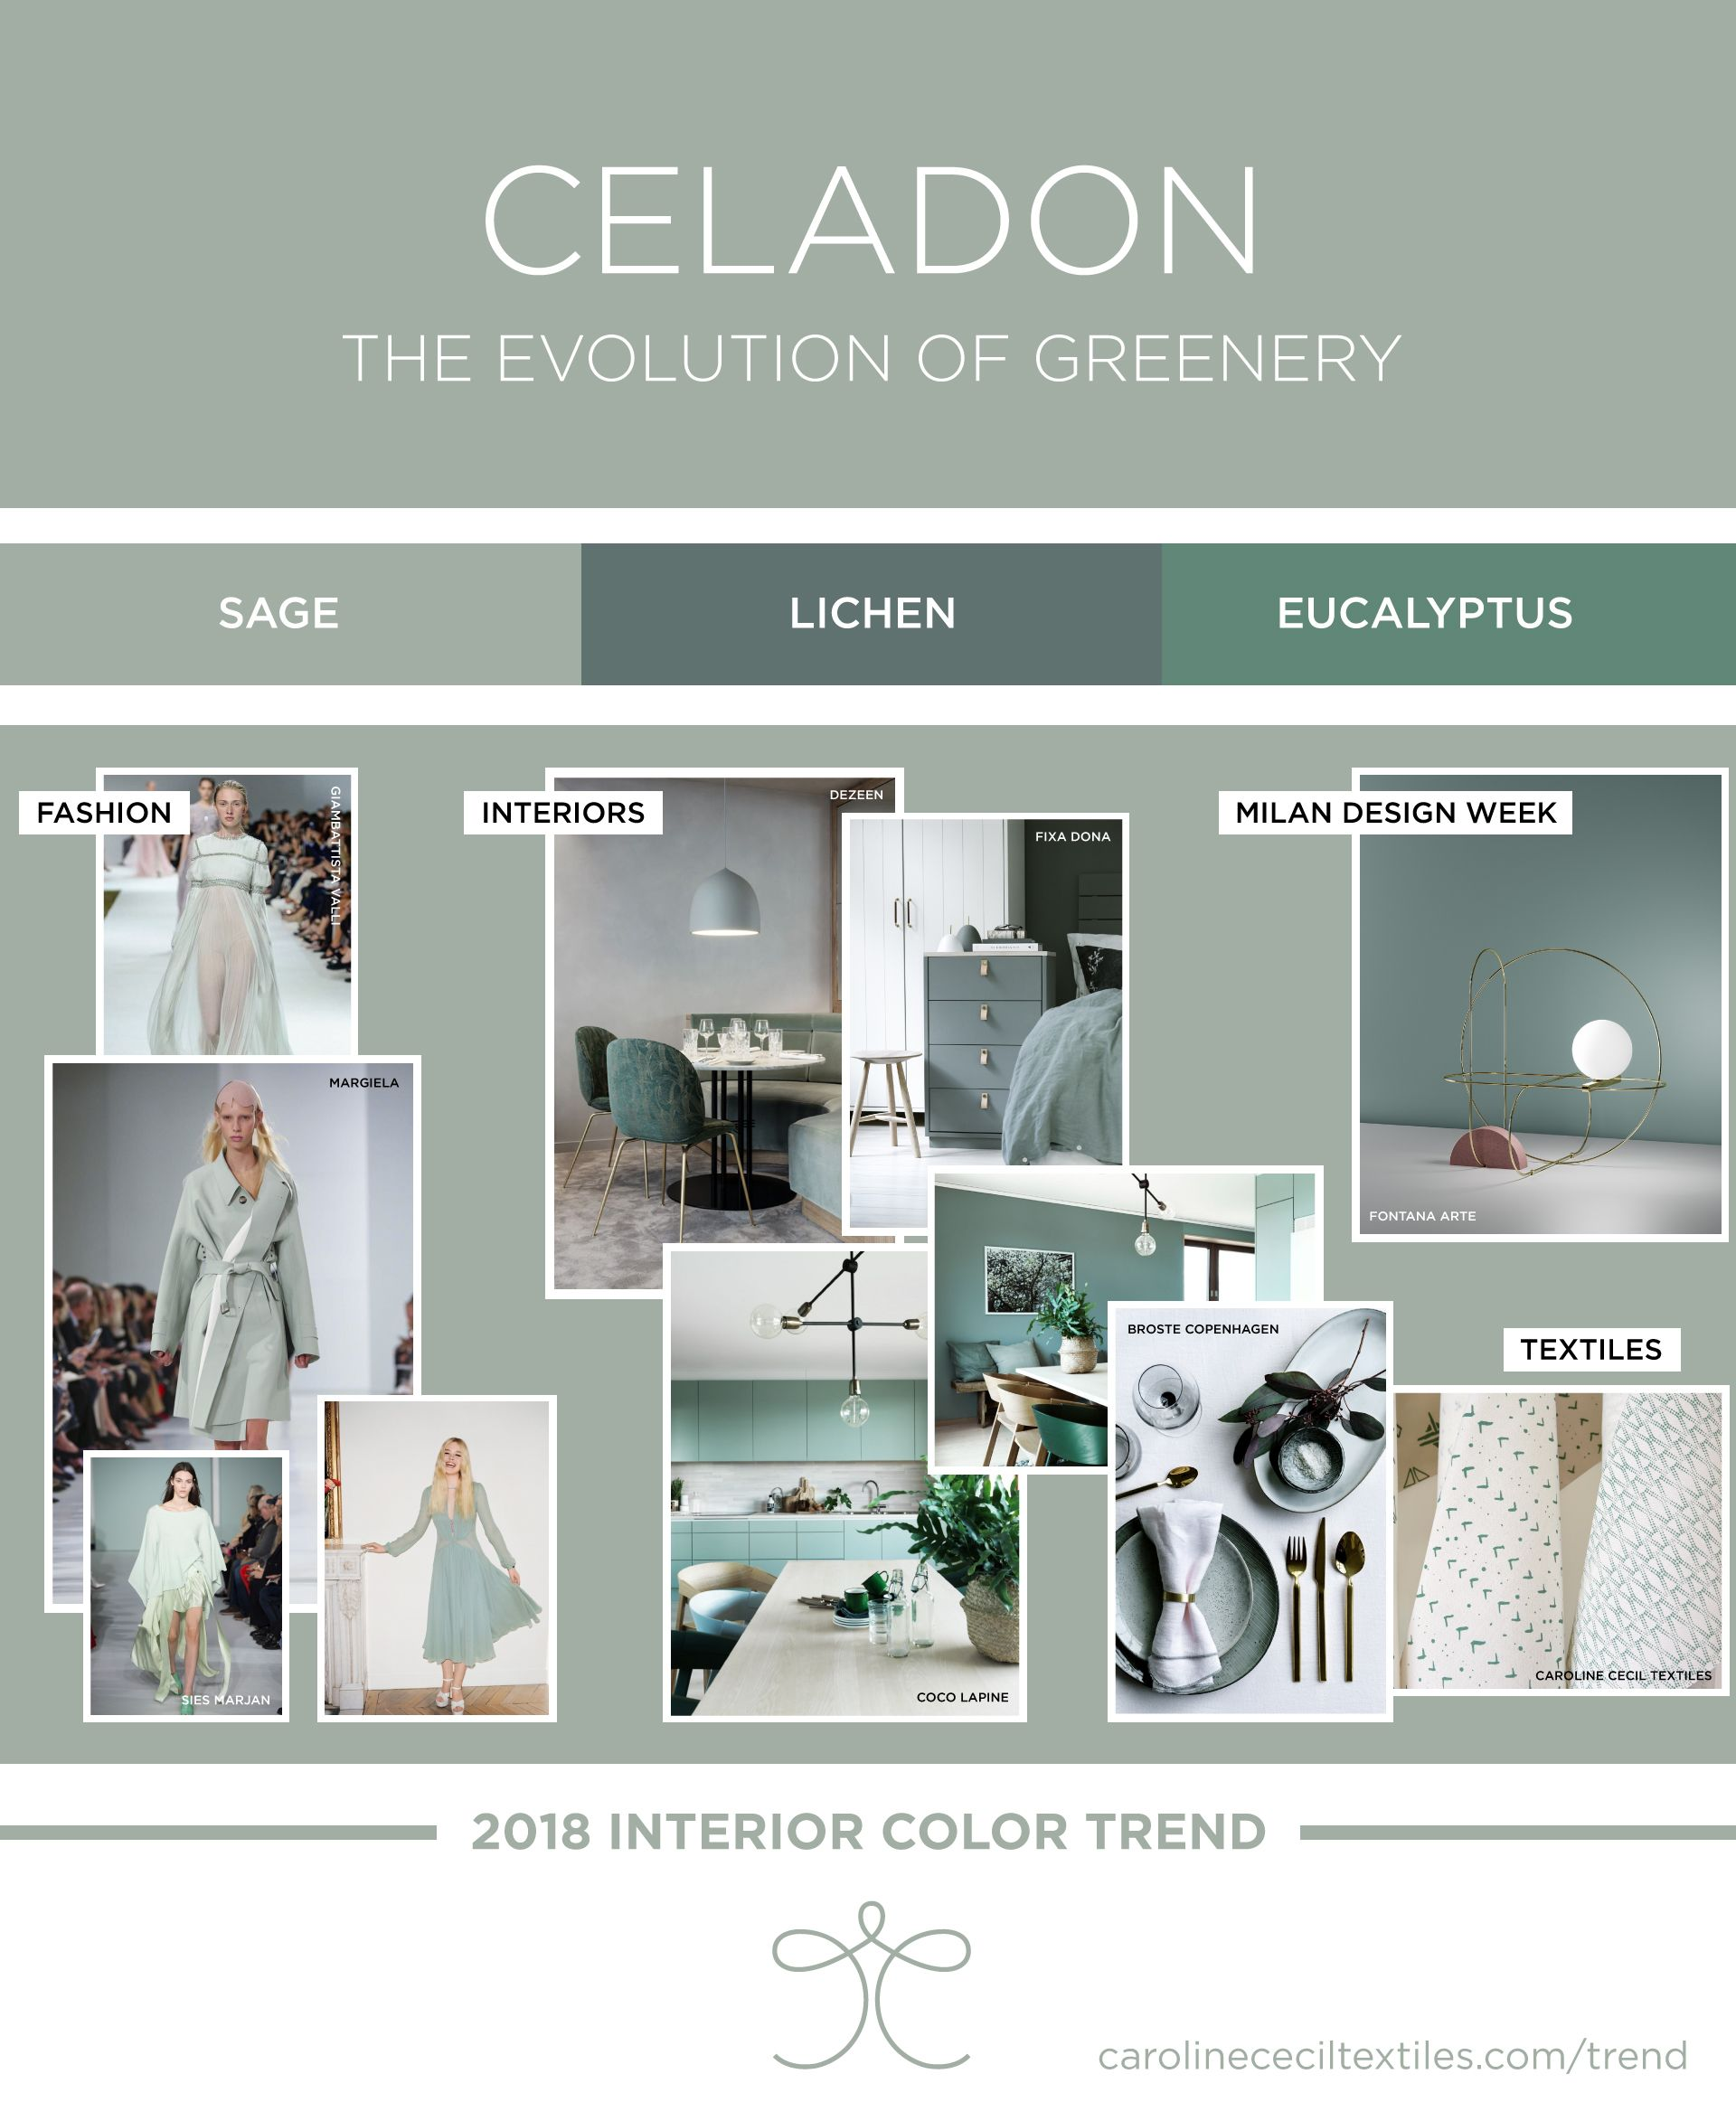 Interior color trends 2018 ss18 aw18 greenery for Interior design trends 2018